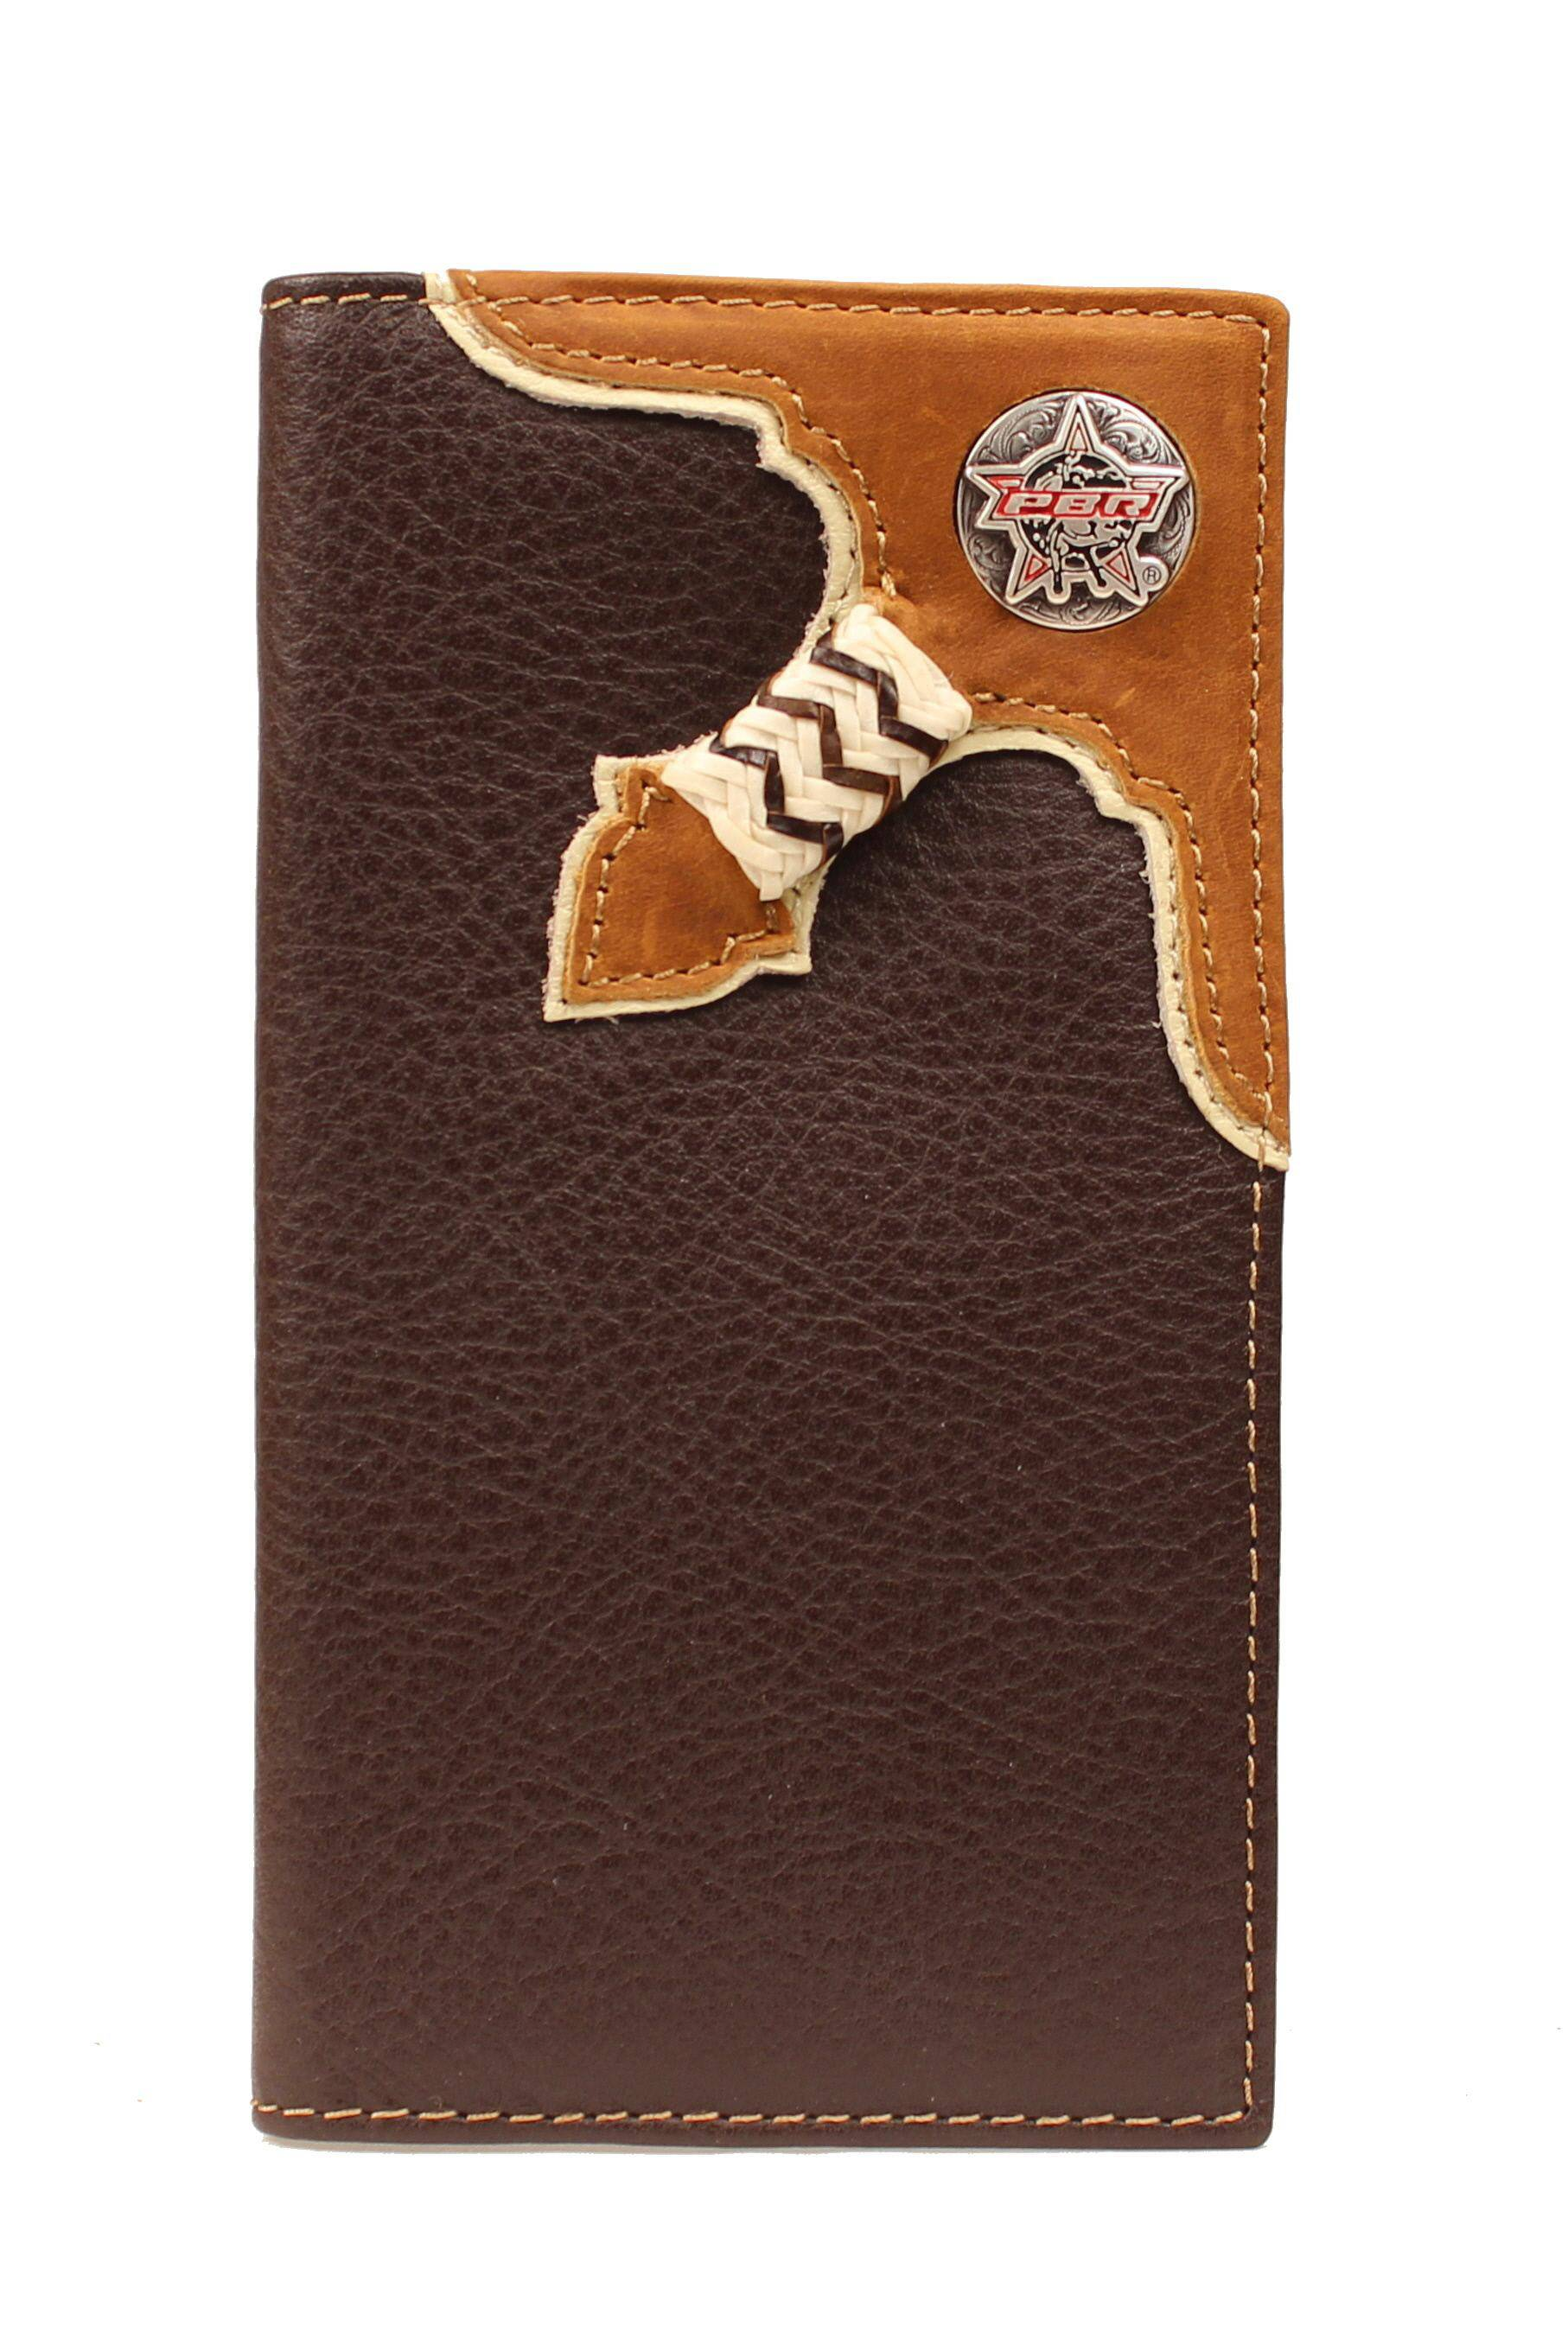 PBR Bullhide with Knot Rodeo Wallet